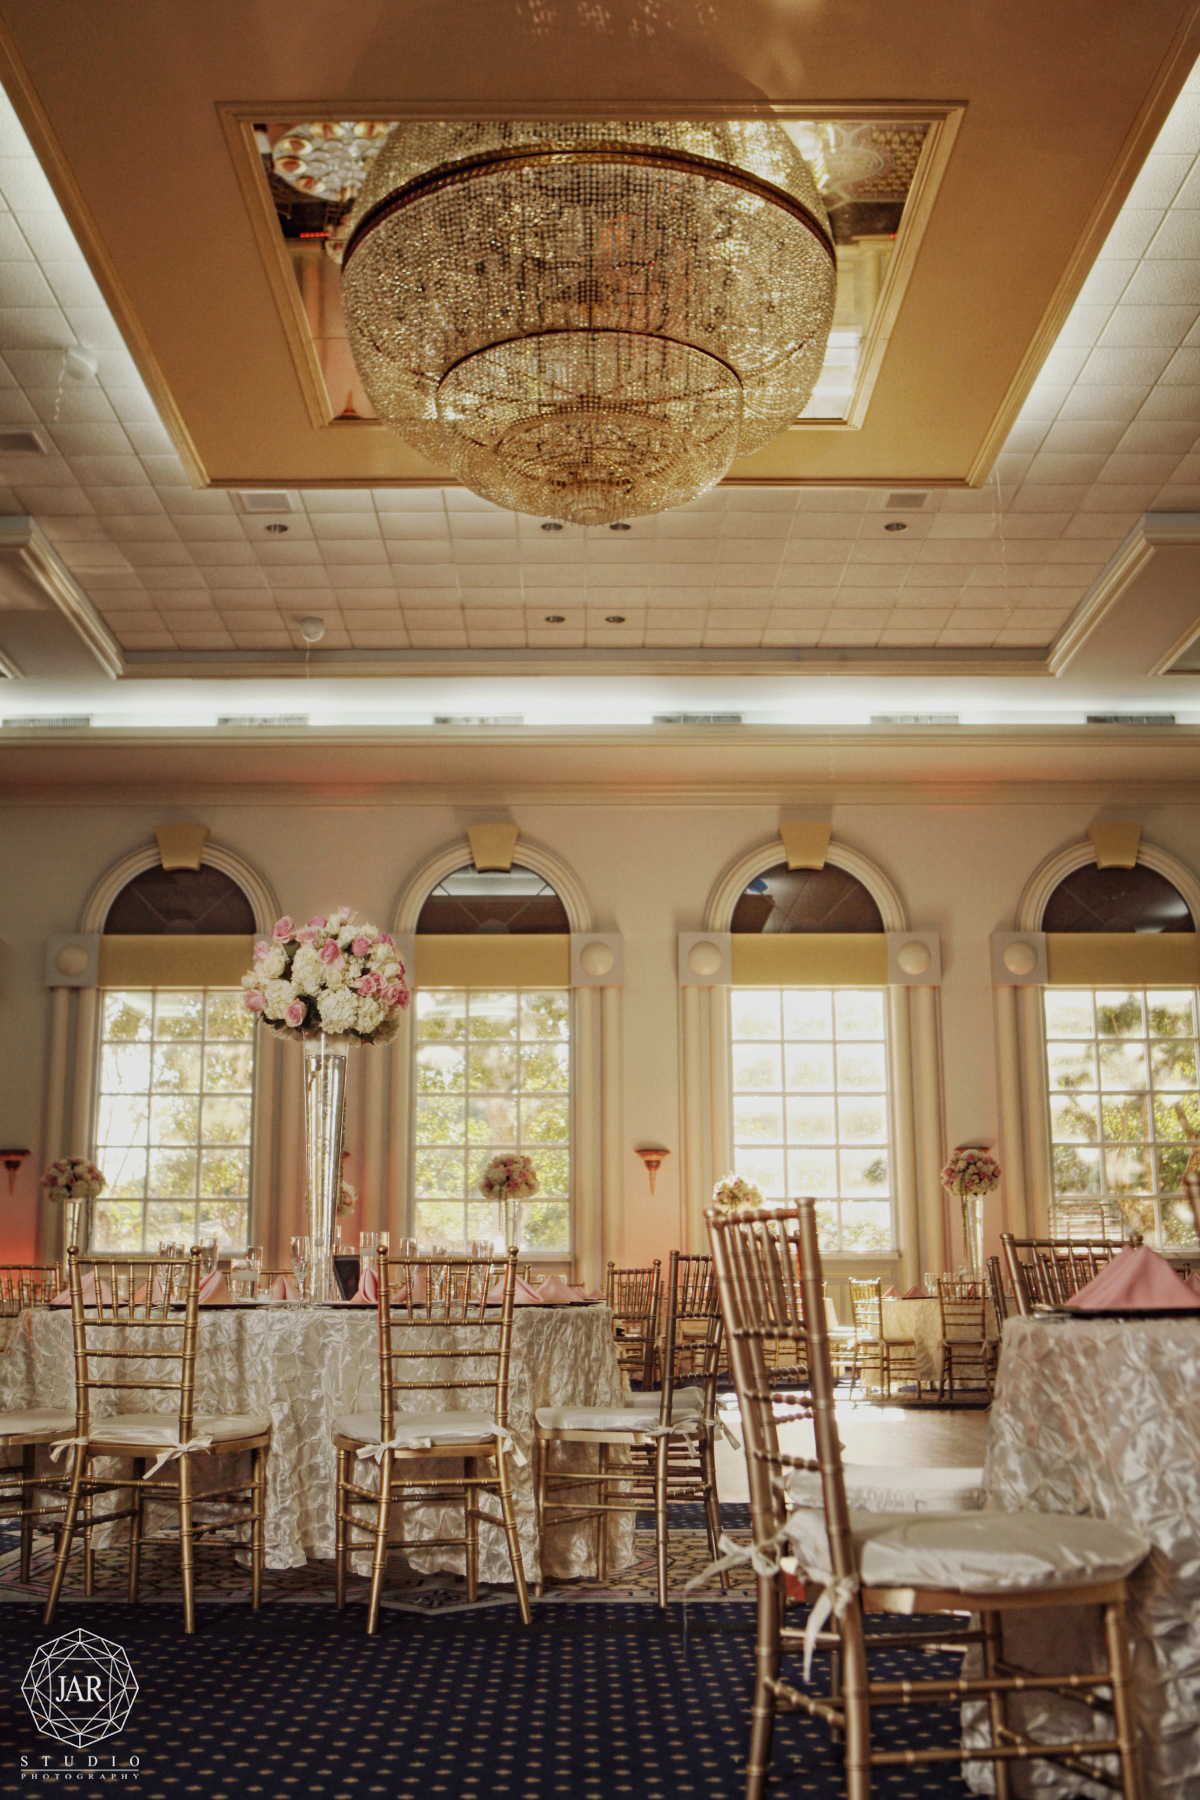 30-jewish-wedding-beautiful-venue-jarstudio-photography-orlando.JPG